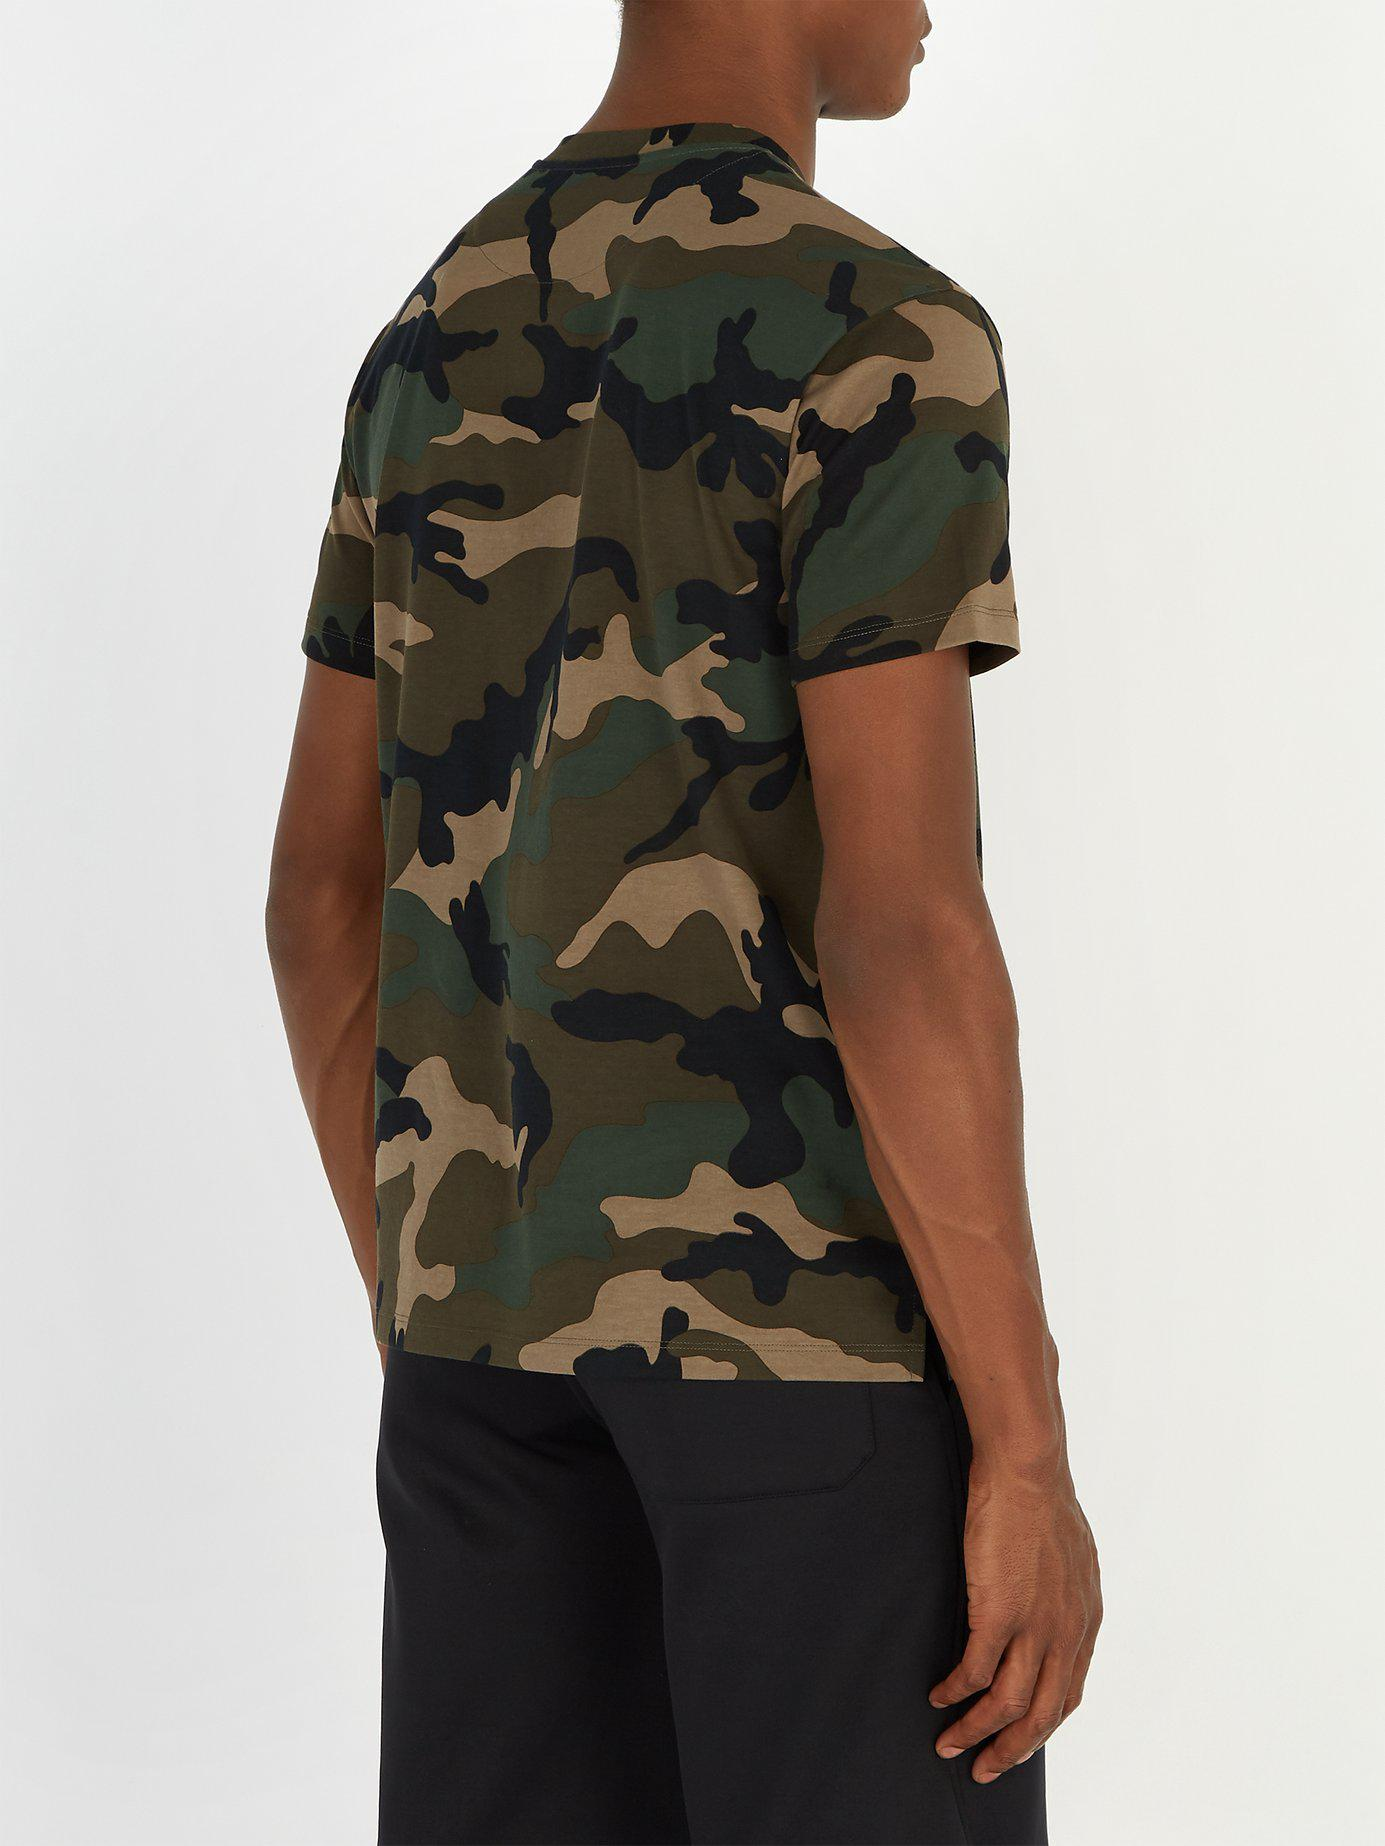 0bb608f3664a0 Valentino - Green Vltn Camouflage Print Cotton Jersey T Shirt for Men -  Lyst. View fullscreen